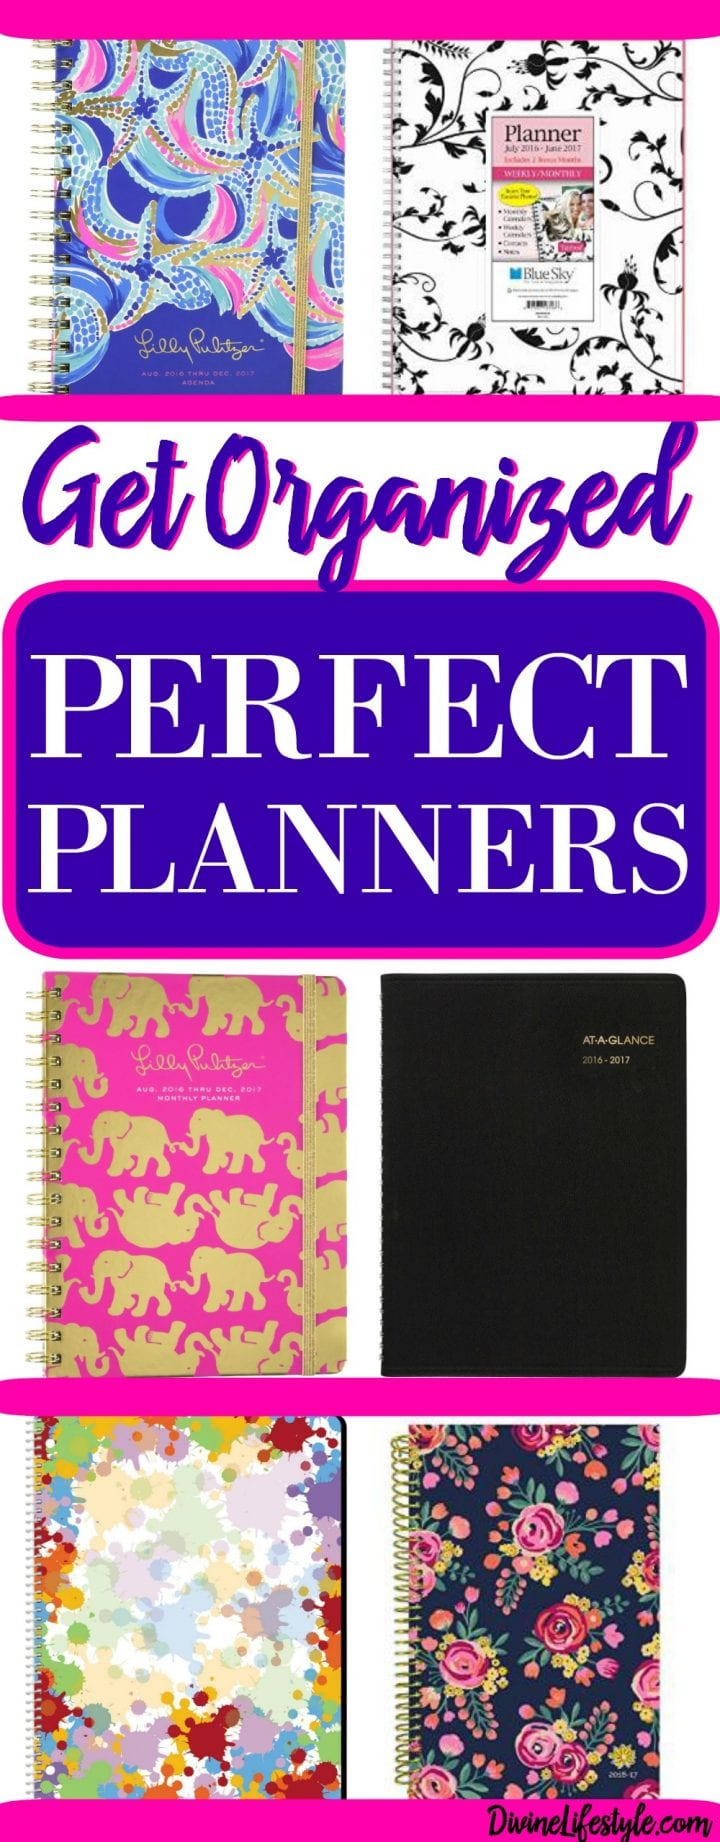 Get Organized Perfect Planners